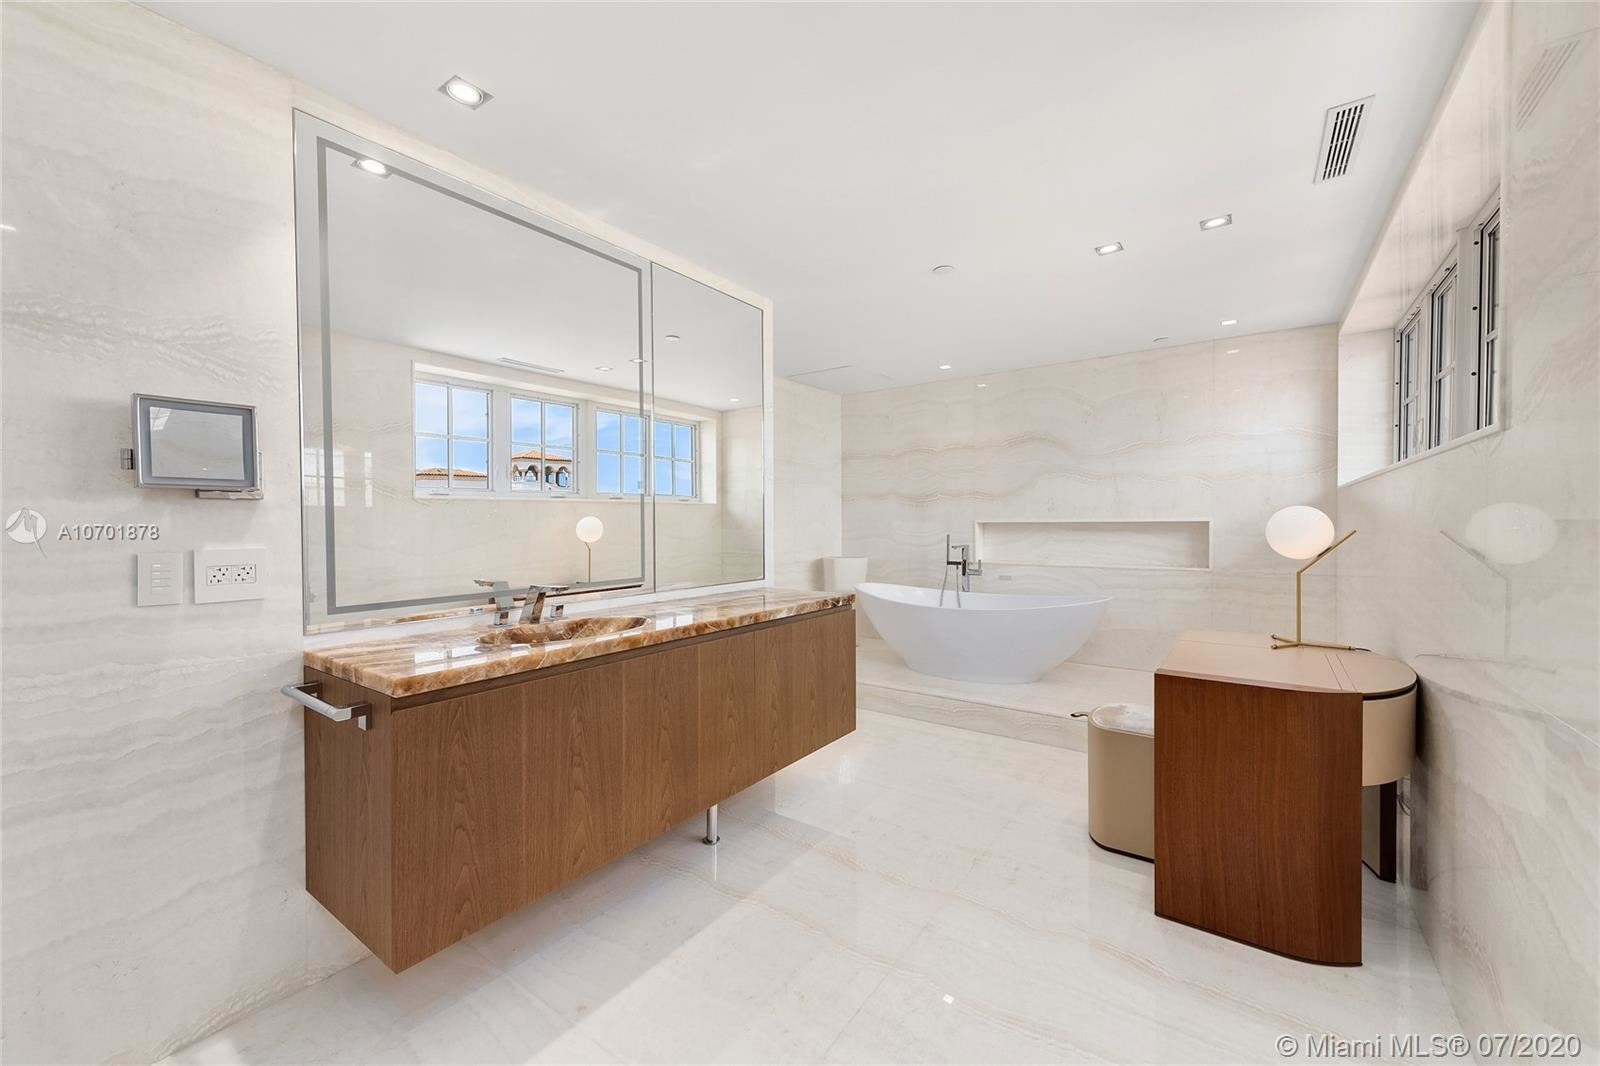 Photo 34 of Listing MLS a10701878 in 5292 Fisher Island Dr #5292 Miami FL 33109